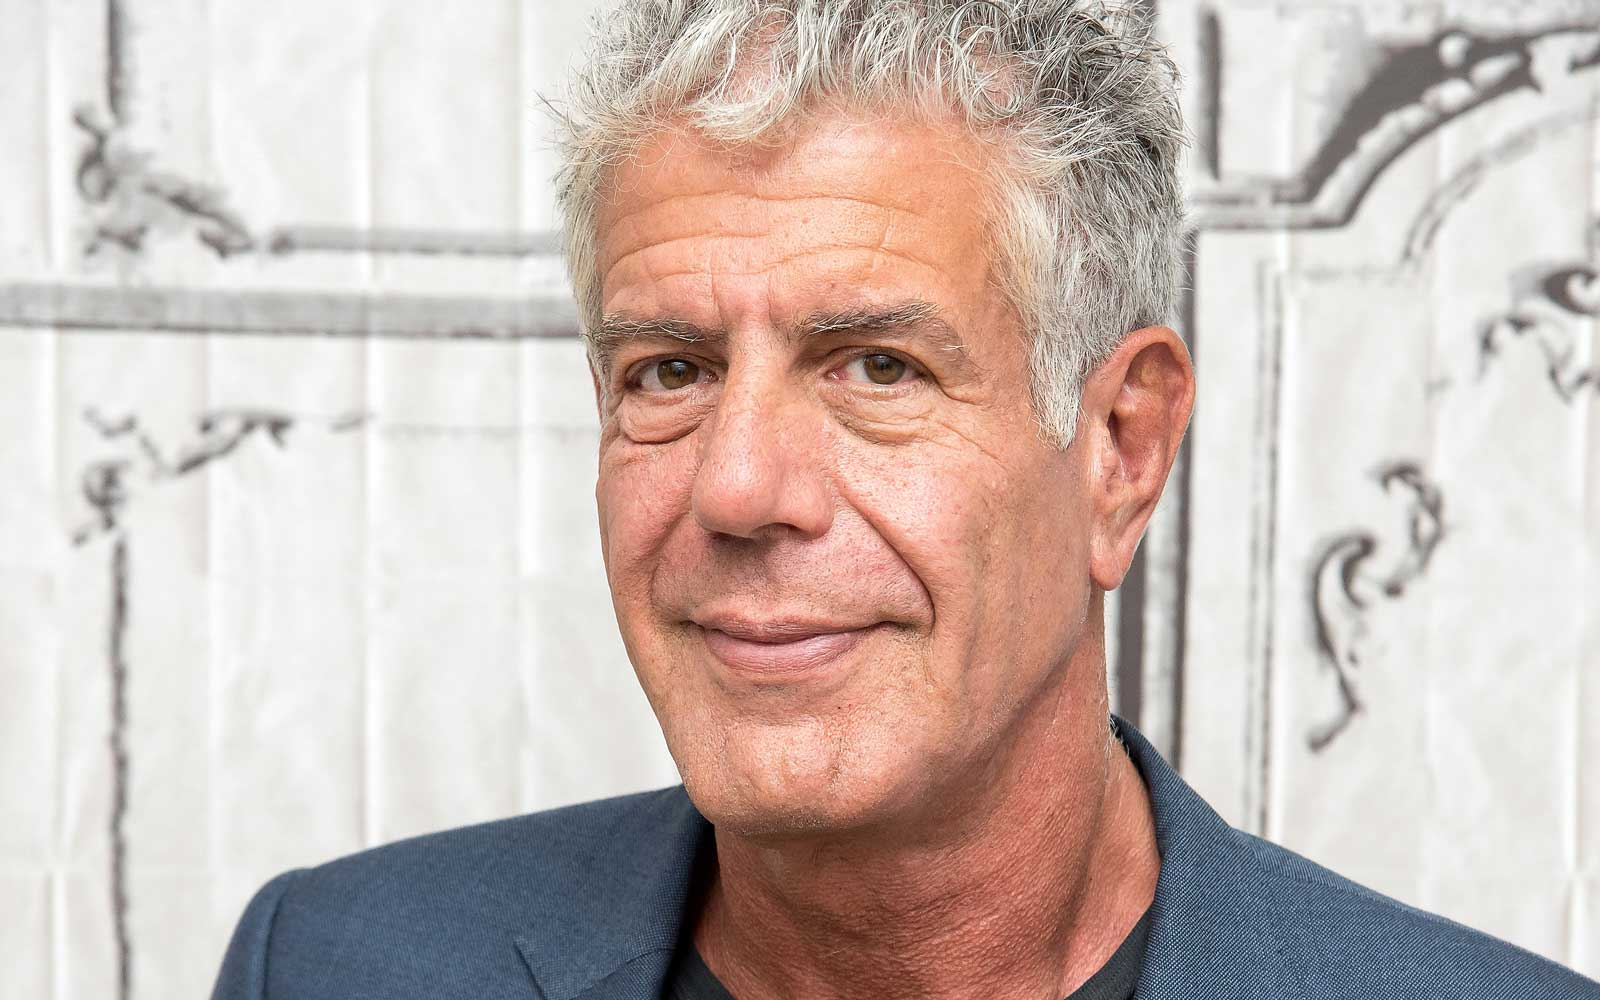 Grieving Friends, Fans and Followers React to Anthony Bourdain's Death